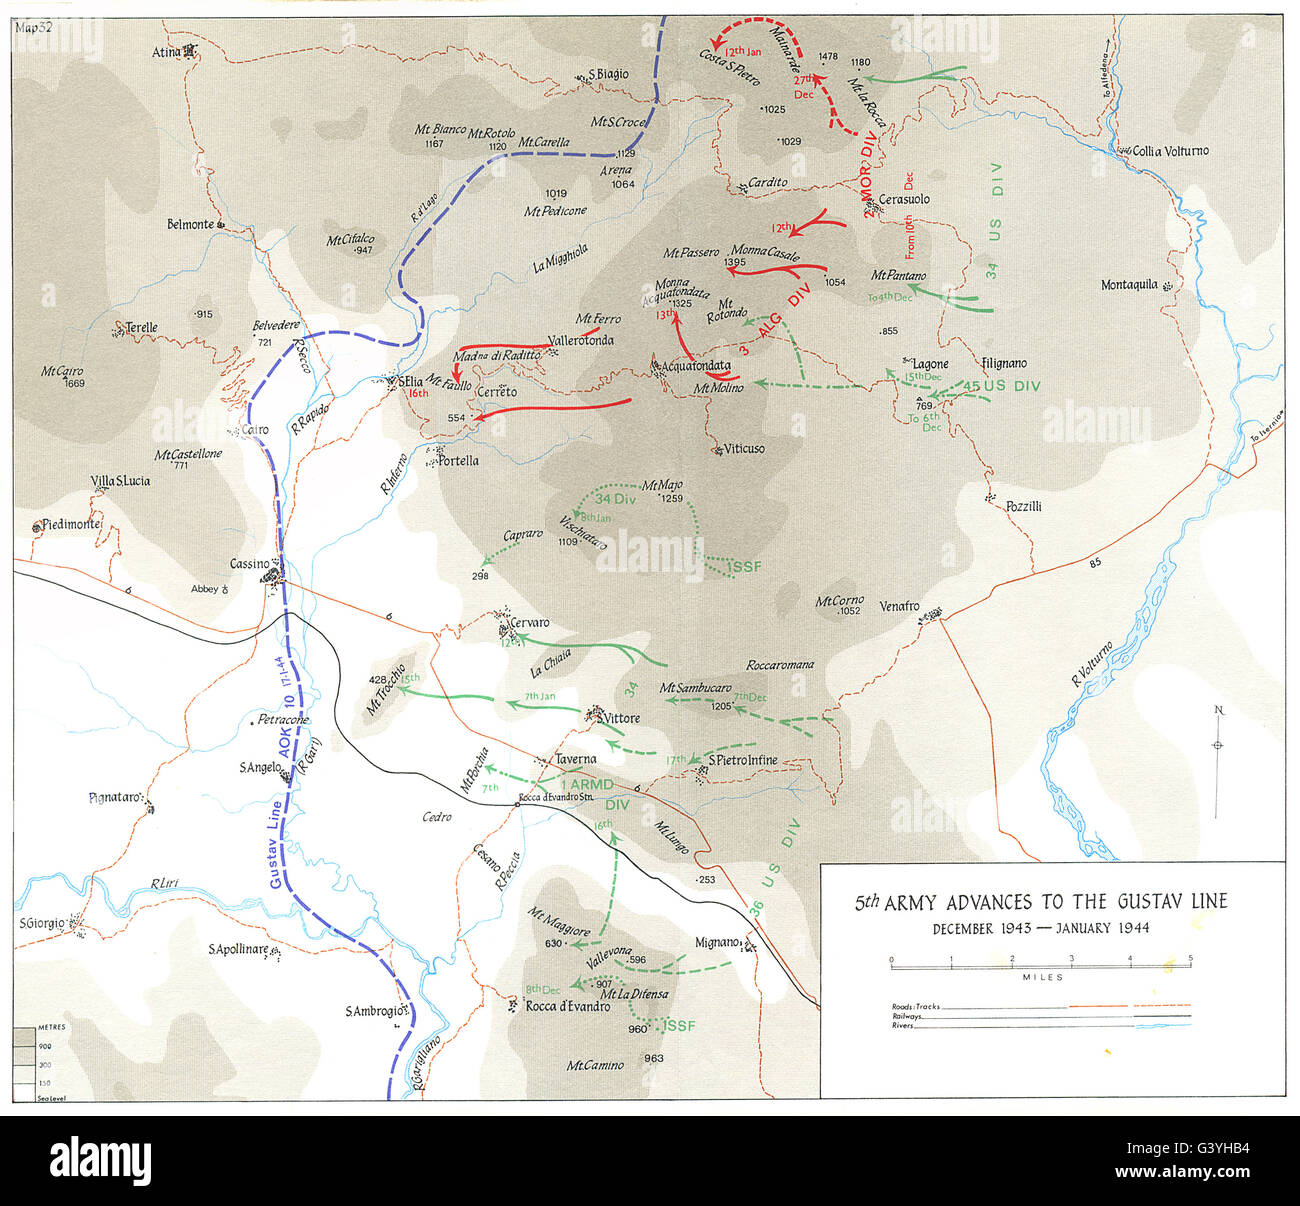 BERNHARDT LINE ASSAULT: Nov-Dec 1943) : 5th Army Advances to Gustav, 1973 map - Stock Image